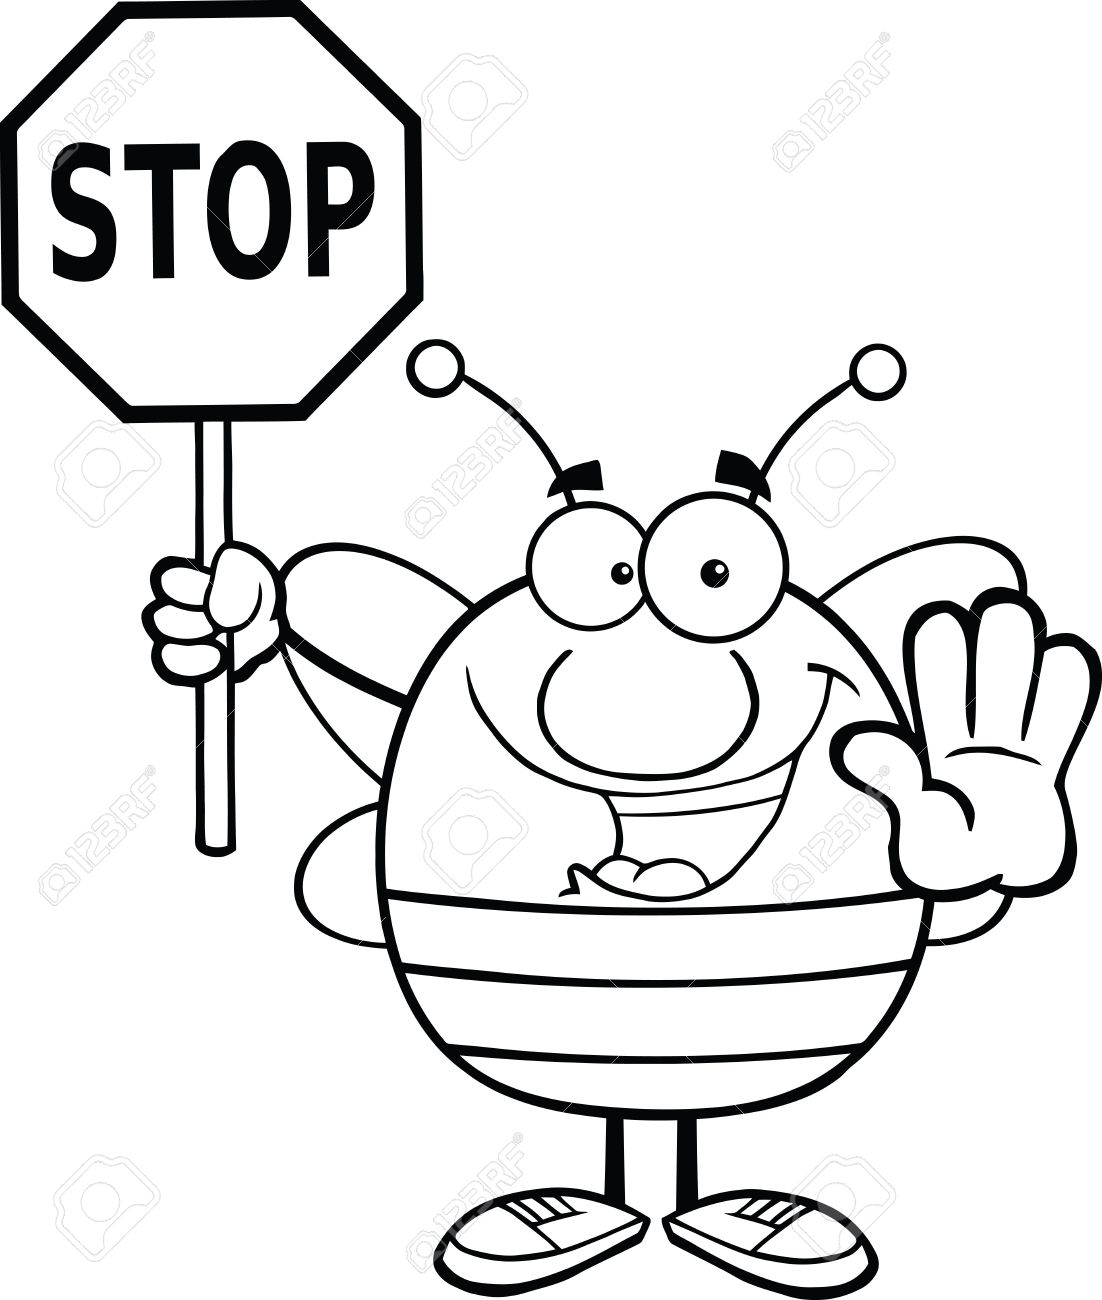 Best Stop Sign Black And White #13935 - Clipartion.com for Stop Sign Clipart Black And White  58lpg